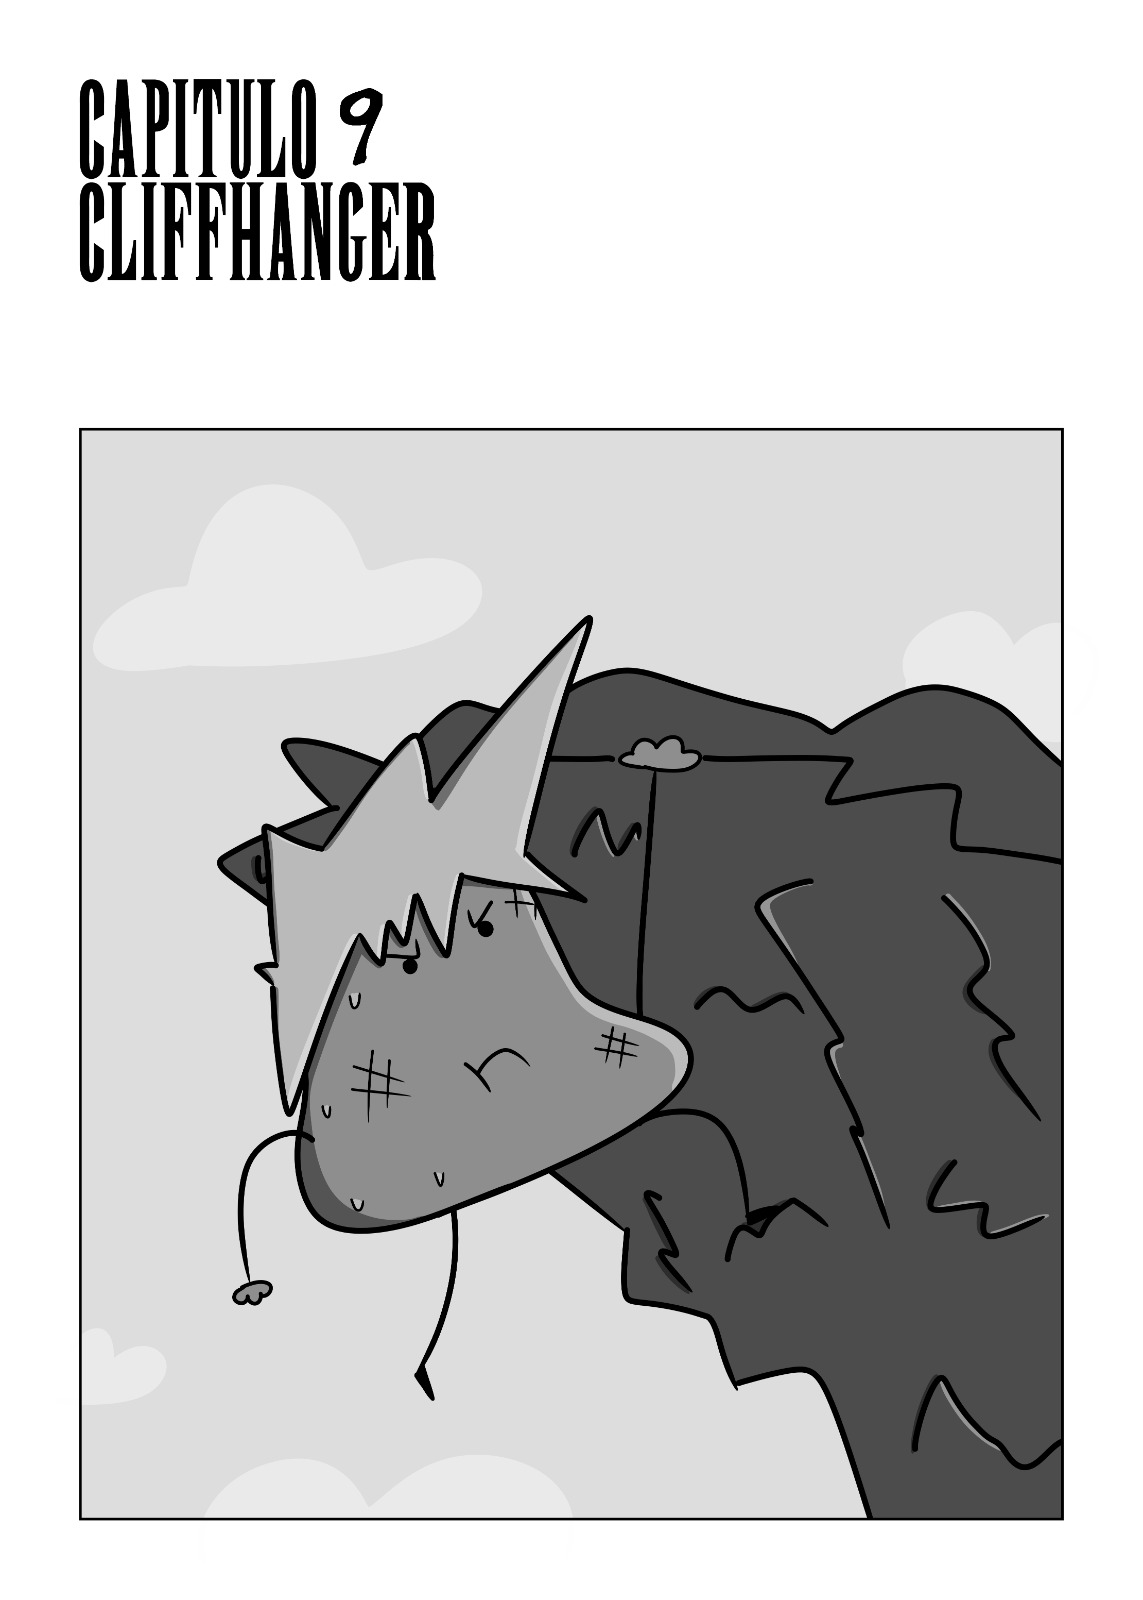 The Finale Of The Fantasy Number 7 Chapter 9: Cliffhanger